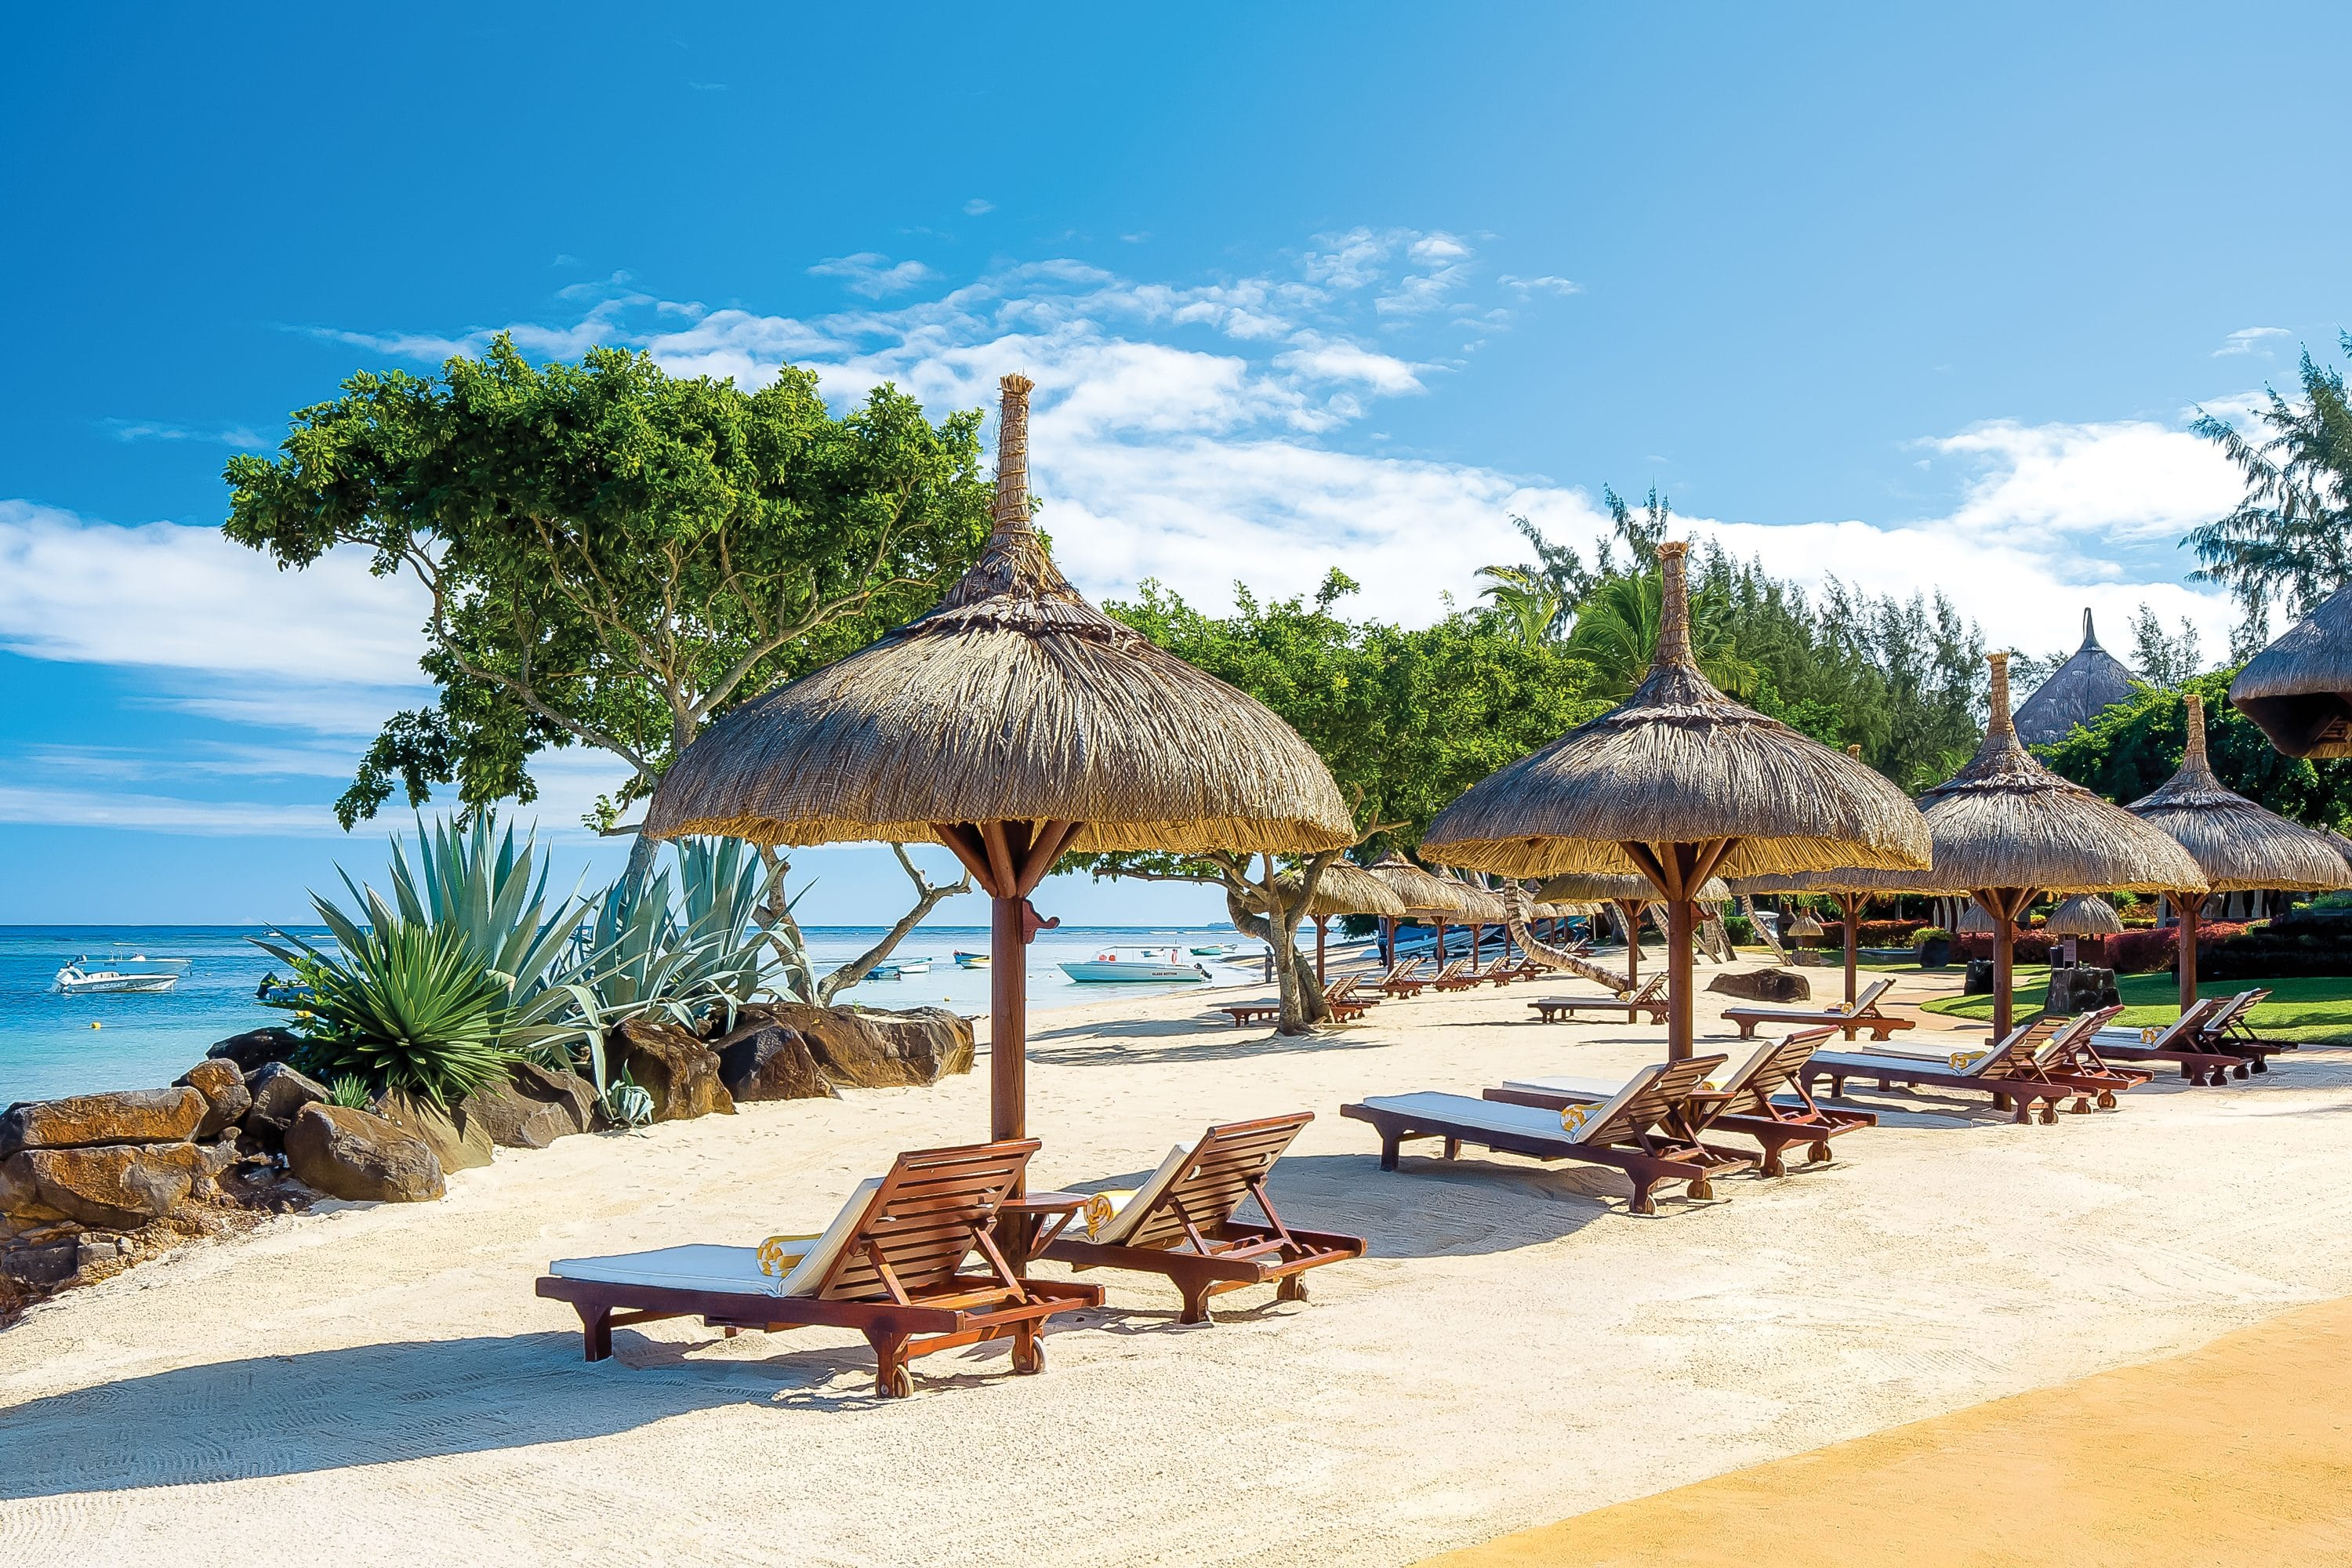 Private beach with loungers at The Oberoi Beach Resort, Mauritius